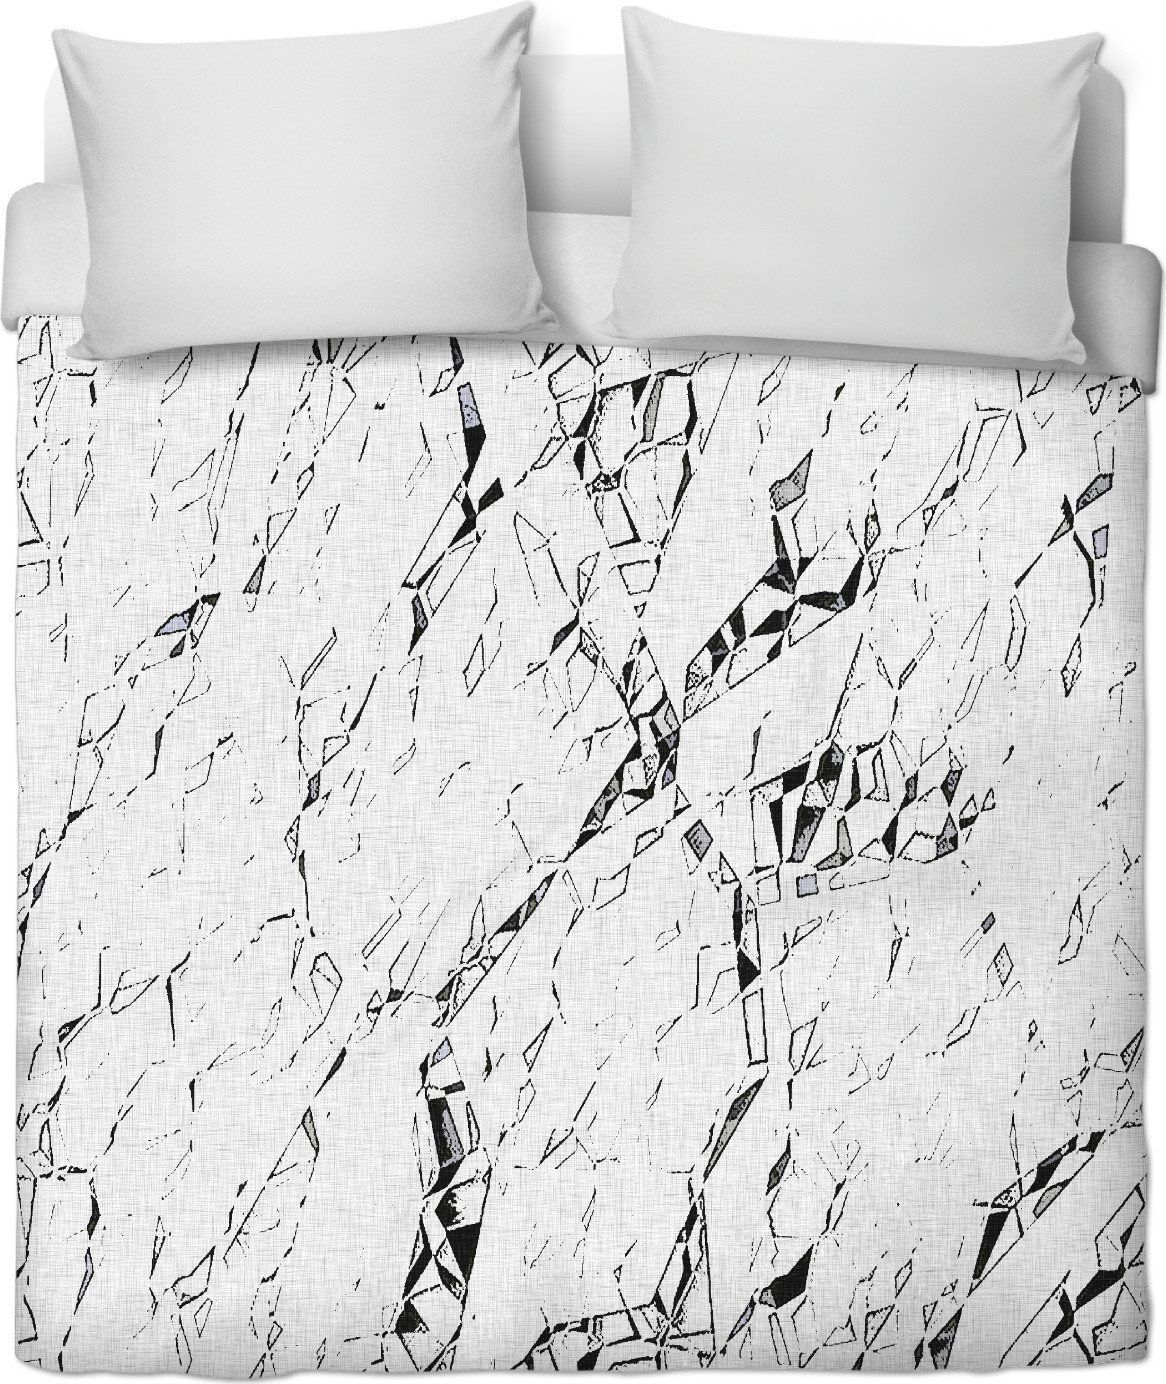 cracks cramped paper abstract duvet cover design cramped paper